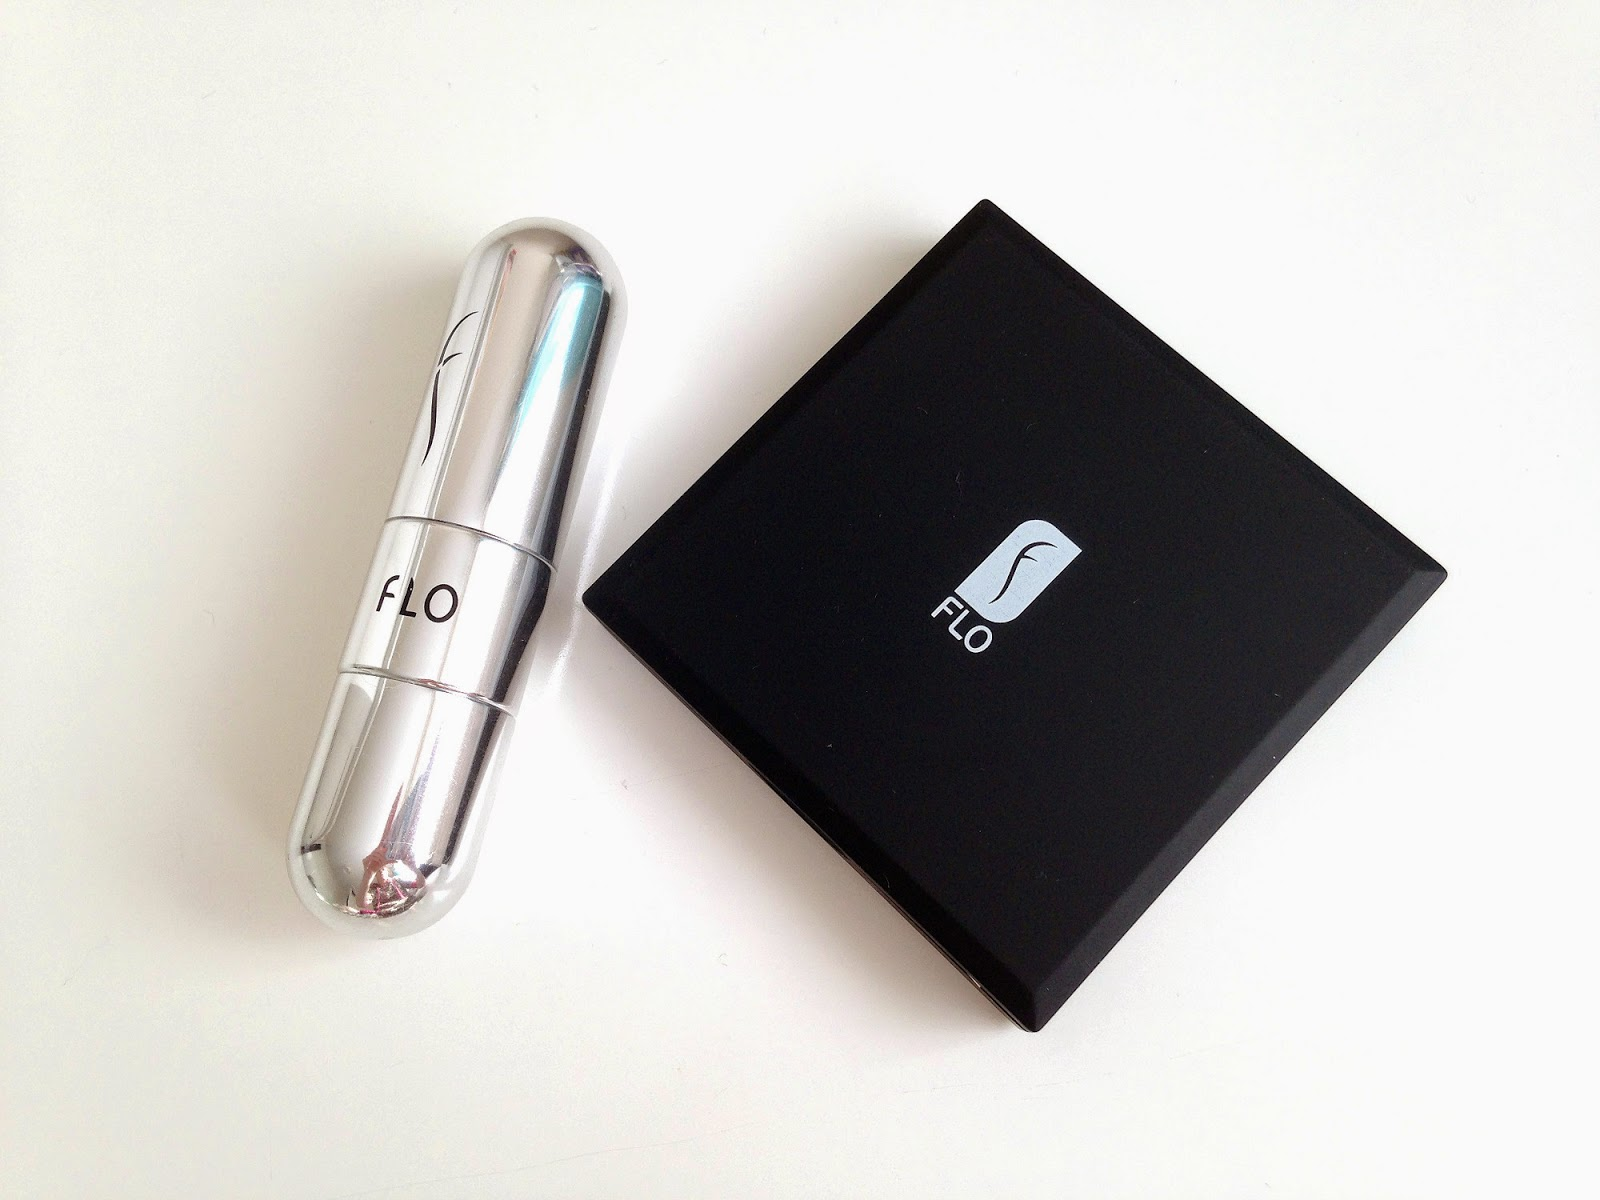 Flo Accessories Refillable Perfume Atomizer and Celebrity LED Mirror